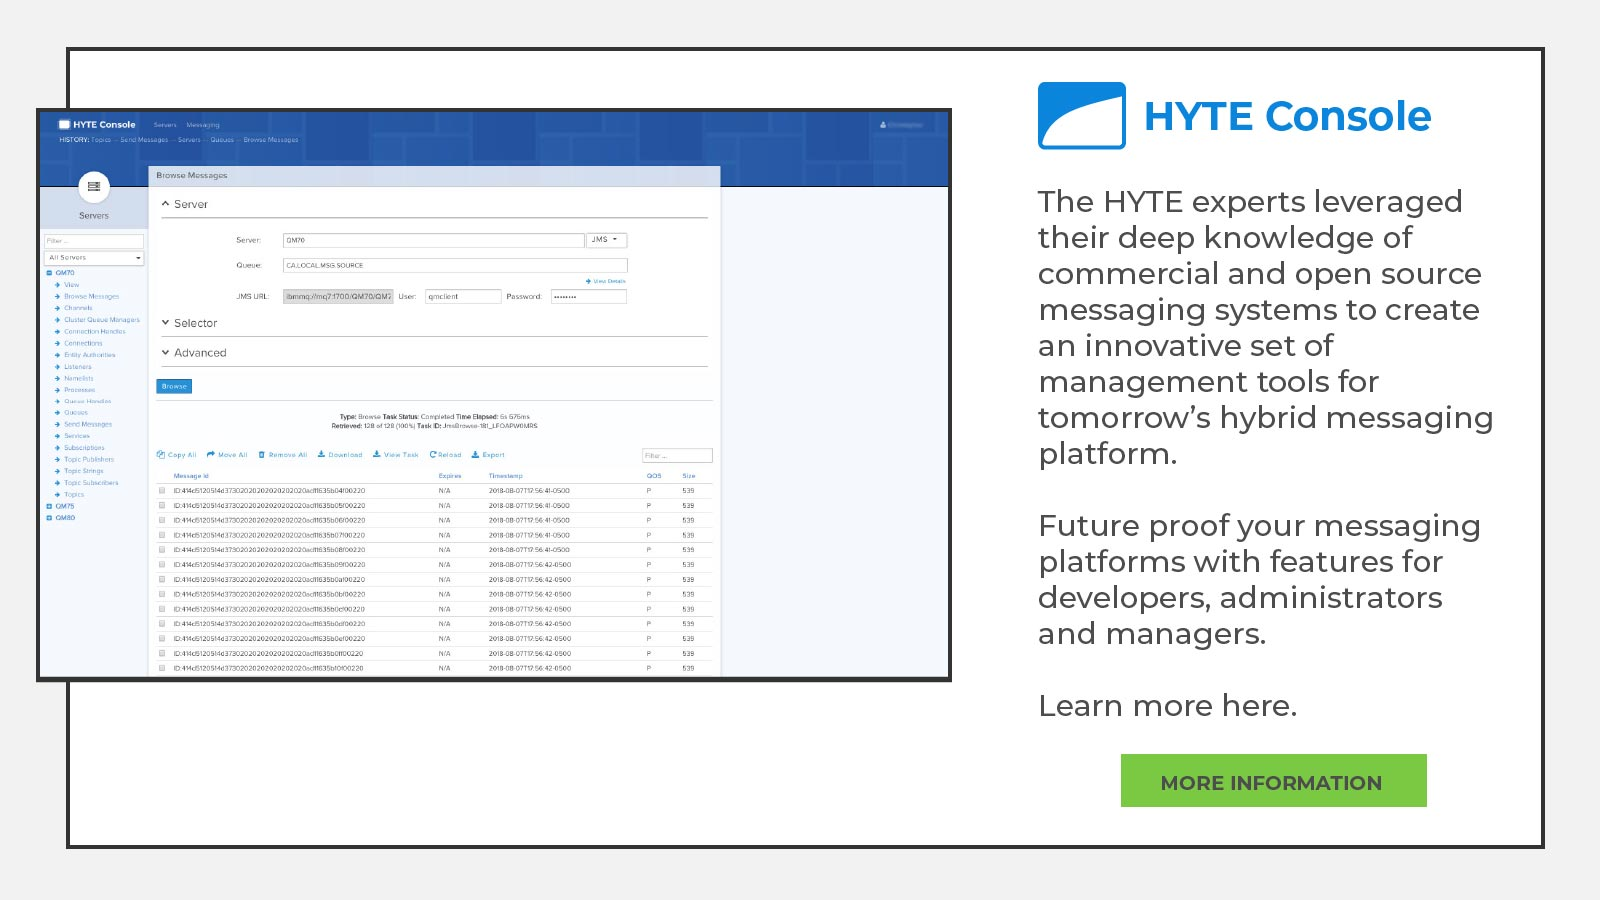 The HYTE experts leveraged their deep knowledge of commercial and open source messaging systems to create an innovative set of management tools for tomorrow's hybrid messaging platform.  Future proof your messaging platforms with features for developers, administrators and managers.  Learn more here.